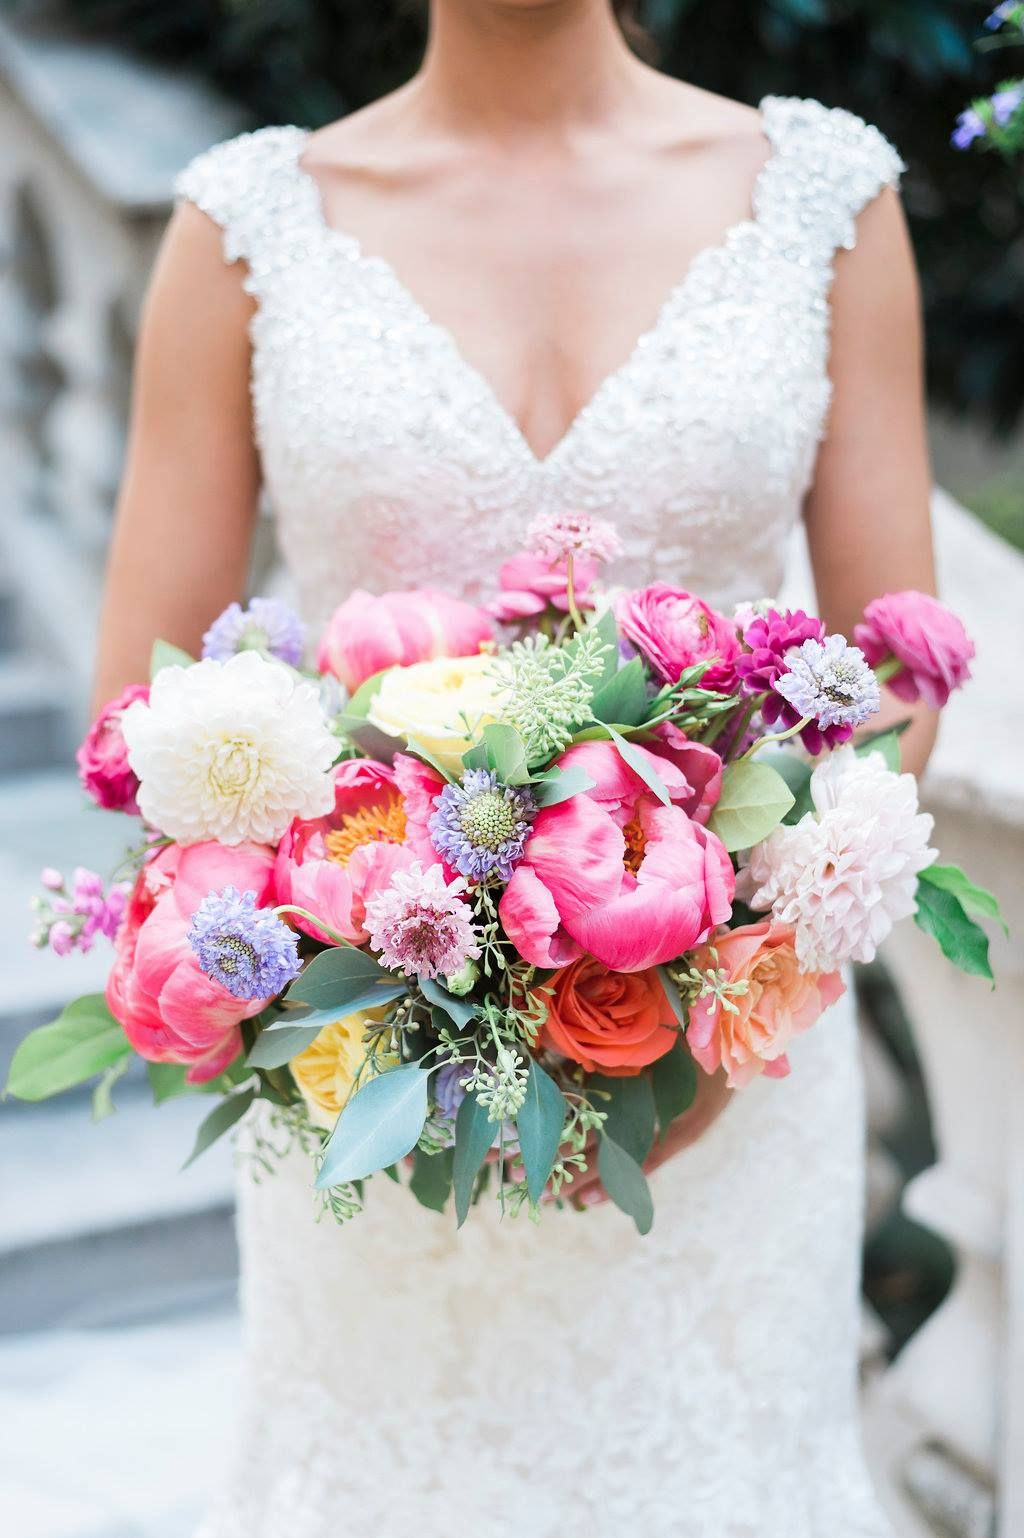 Blog | Floral designs, Boutonnieres and Florists